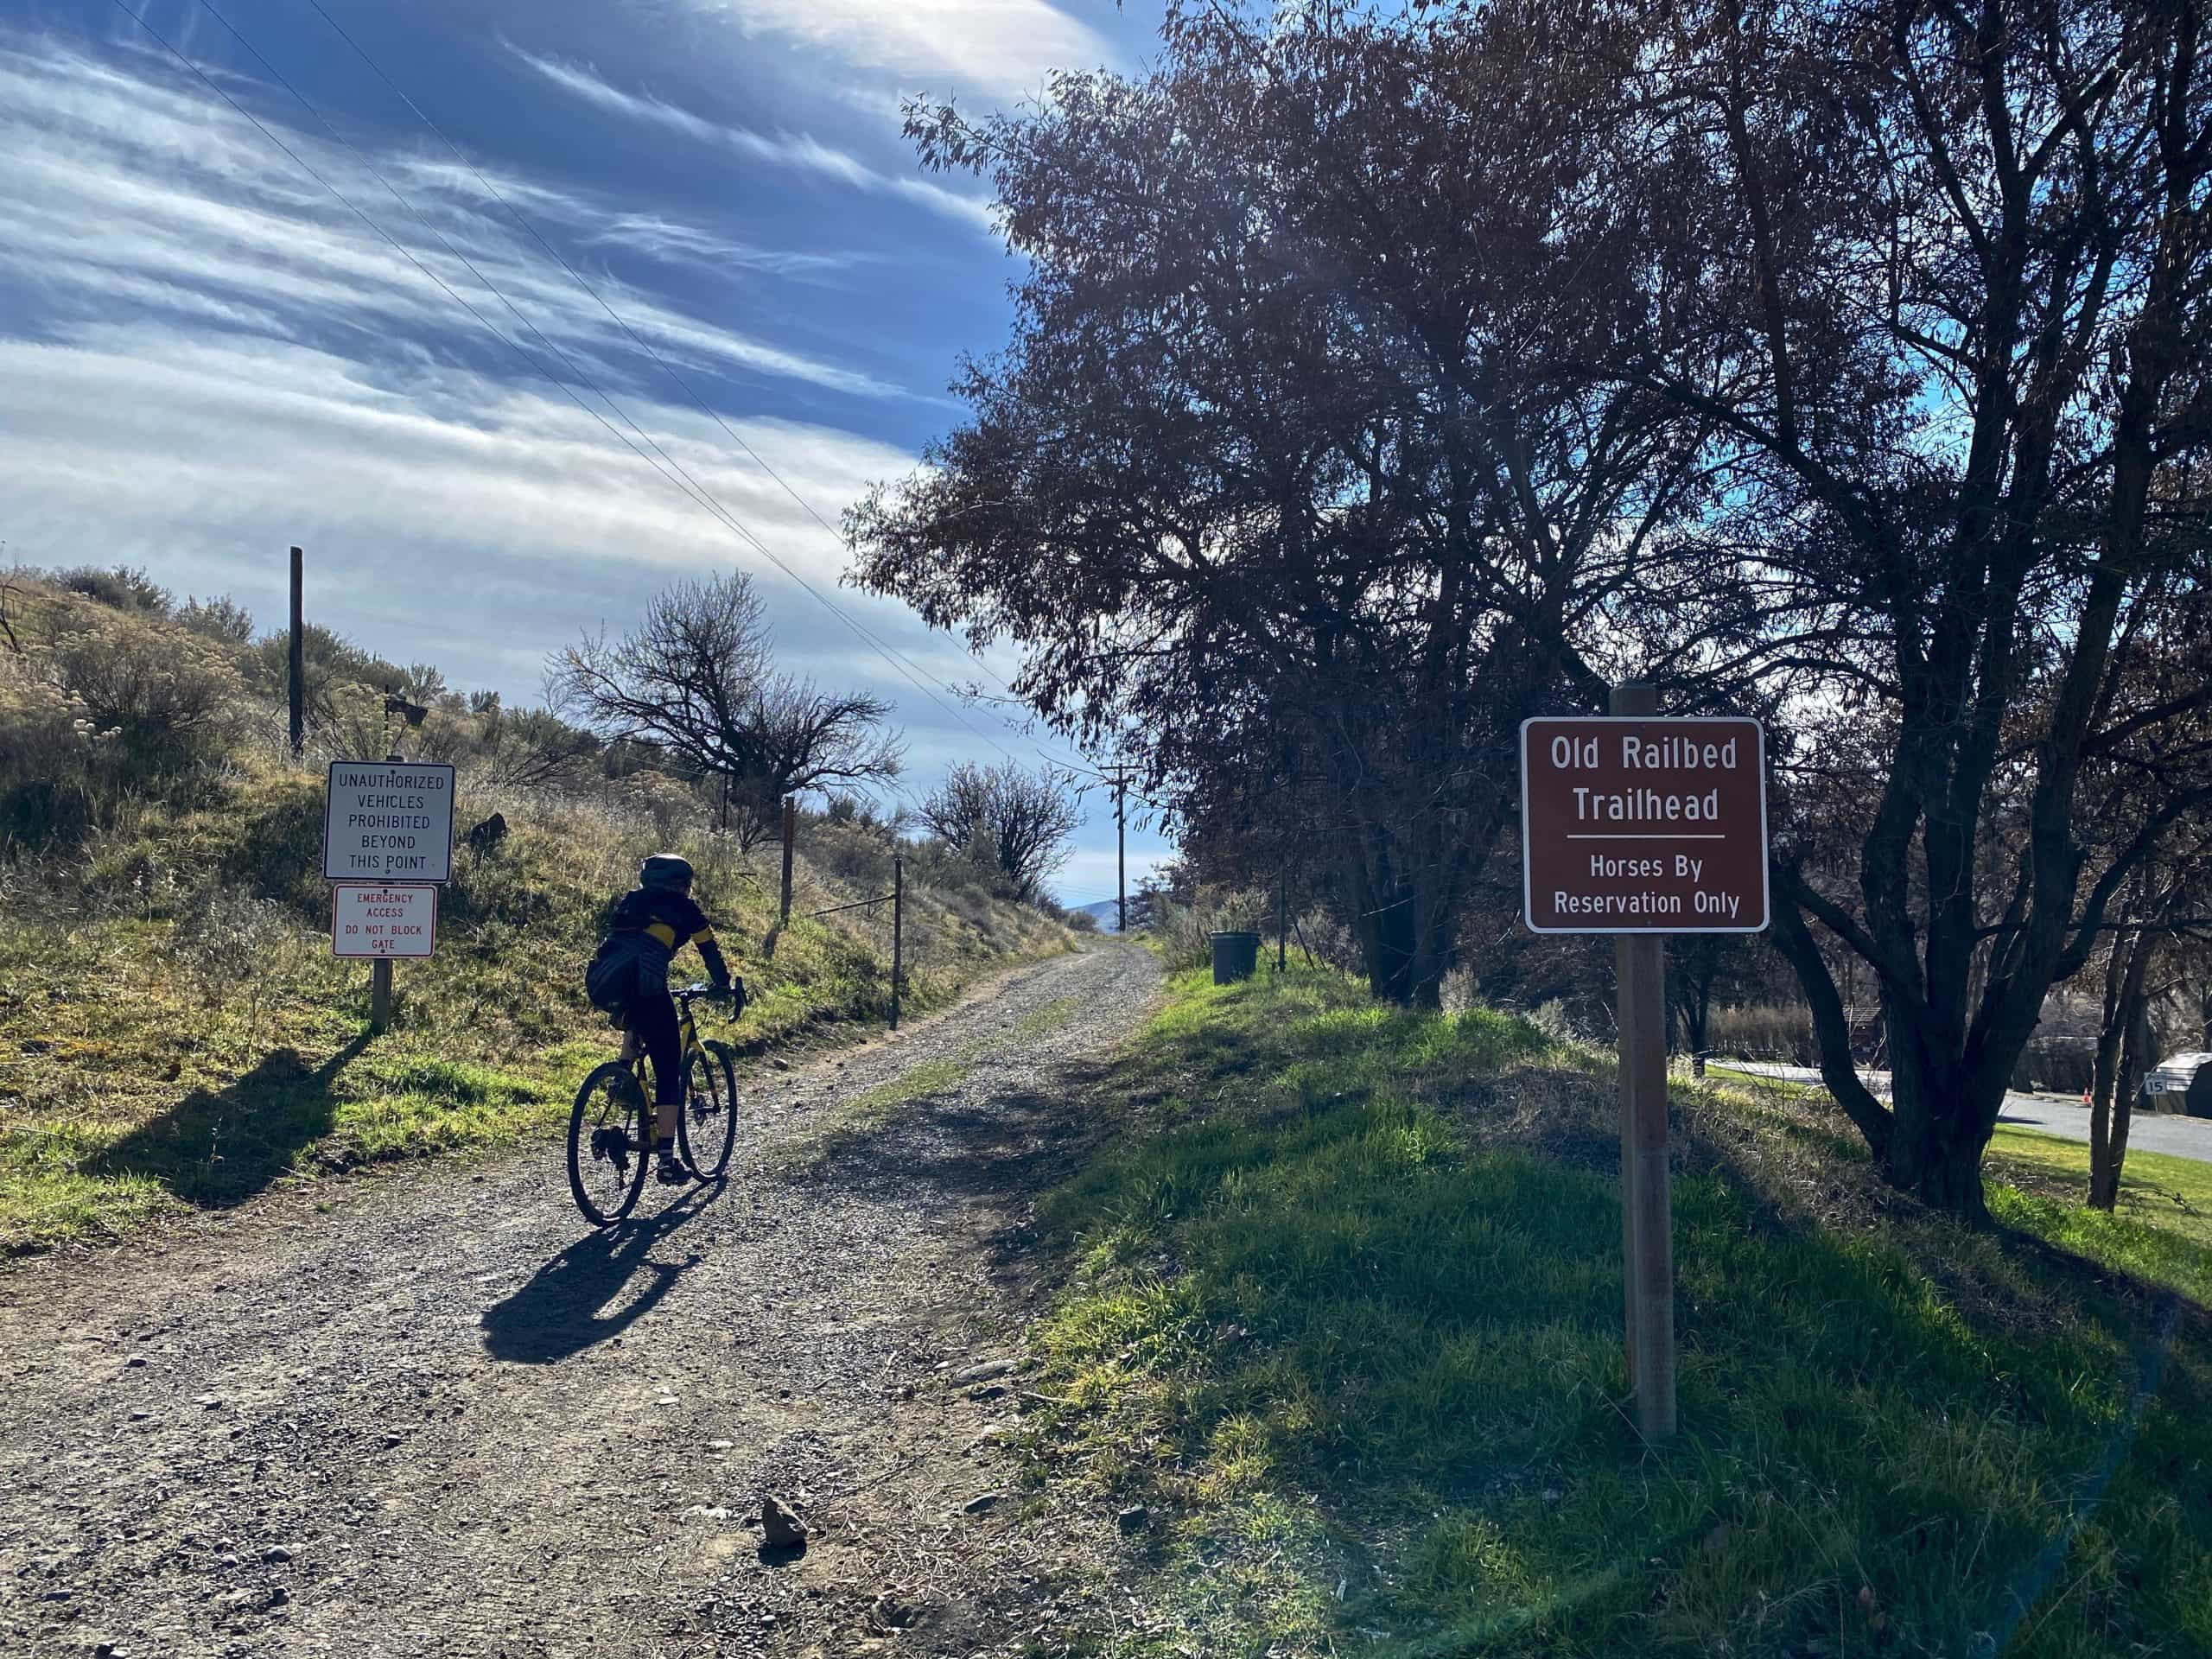 The Deschutes River Trail along the old railway bed near The Dalles, Oregon.